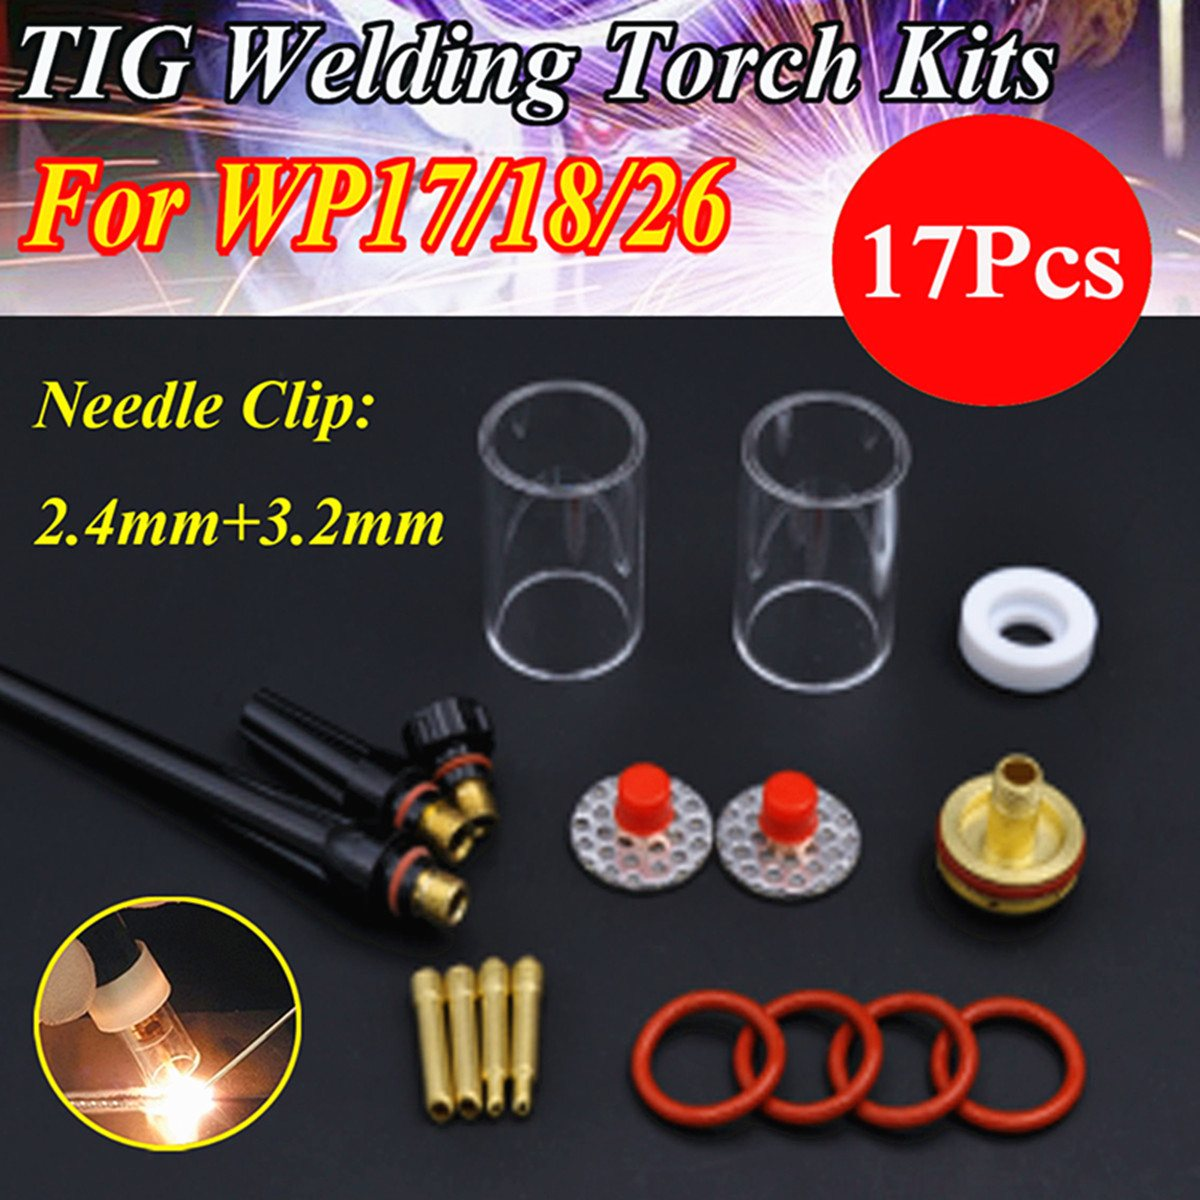 Hot Sale 17PCS TIG Welding Torch Gas Lens Pyrex Glass Cup Stubby Collet FOR WP-17/18/26 Series Welding Accessories wp 17f sr 17f tig welding torch complete 17feet 5meter soldering iron flexible